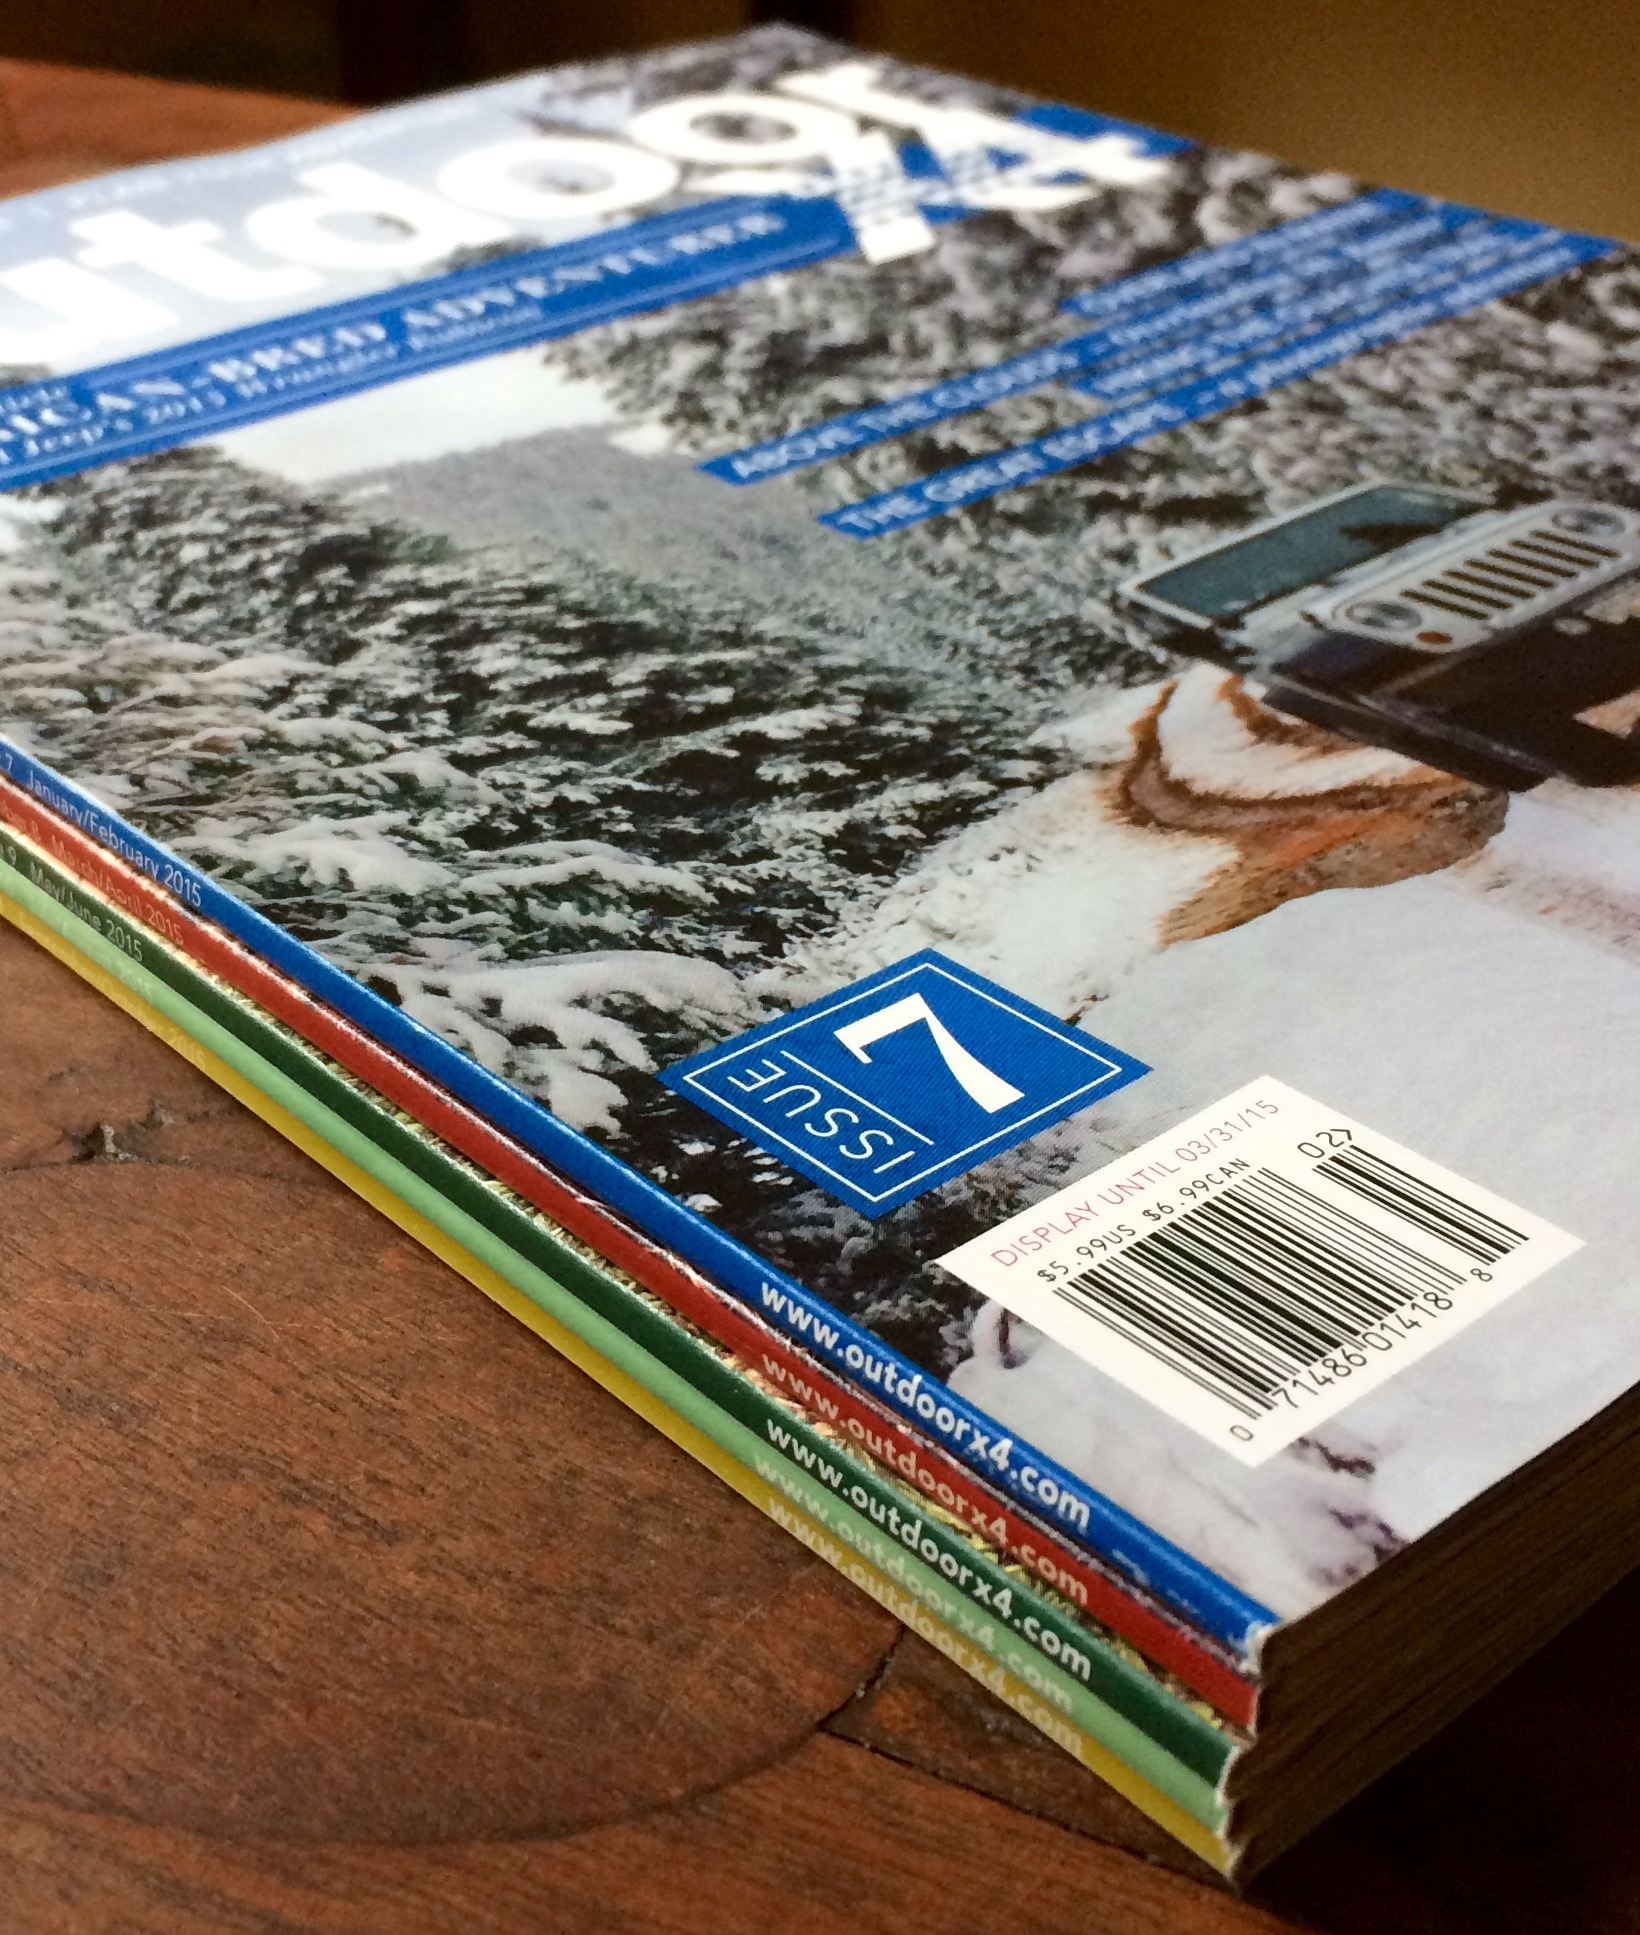 4x4 Outdoor Camping Magazine